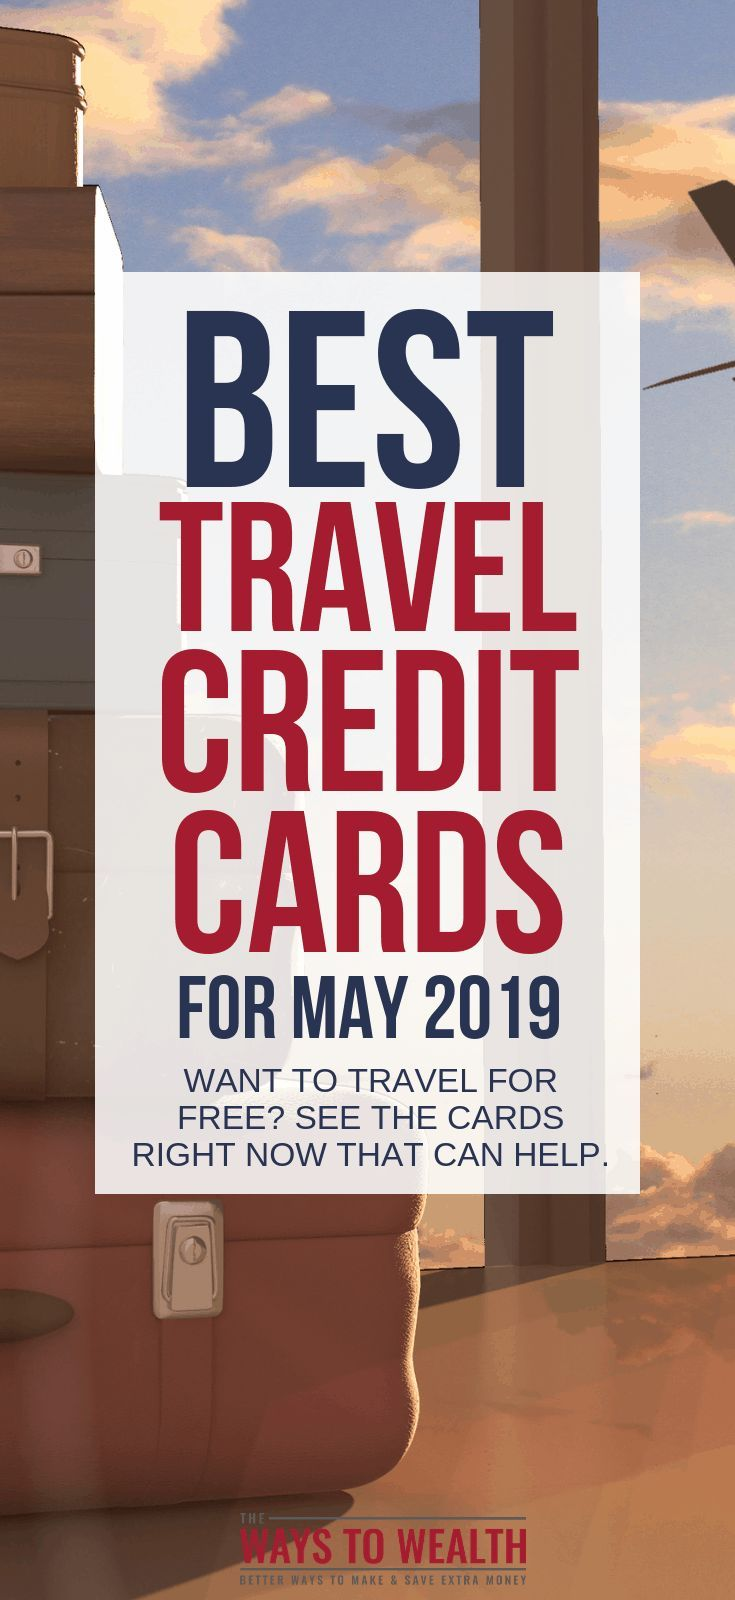 Best Travel Credit Cards Offers & Sign Up Bonuses (January